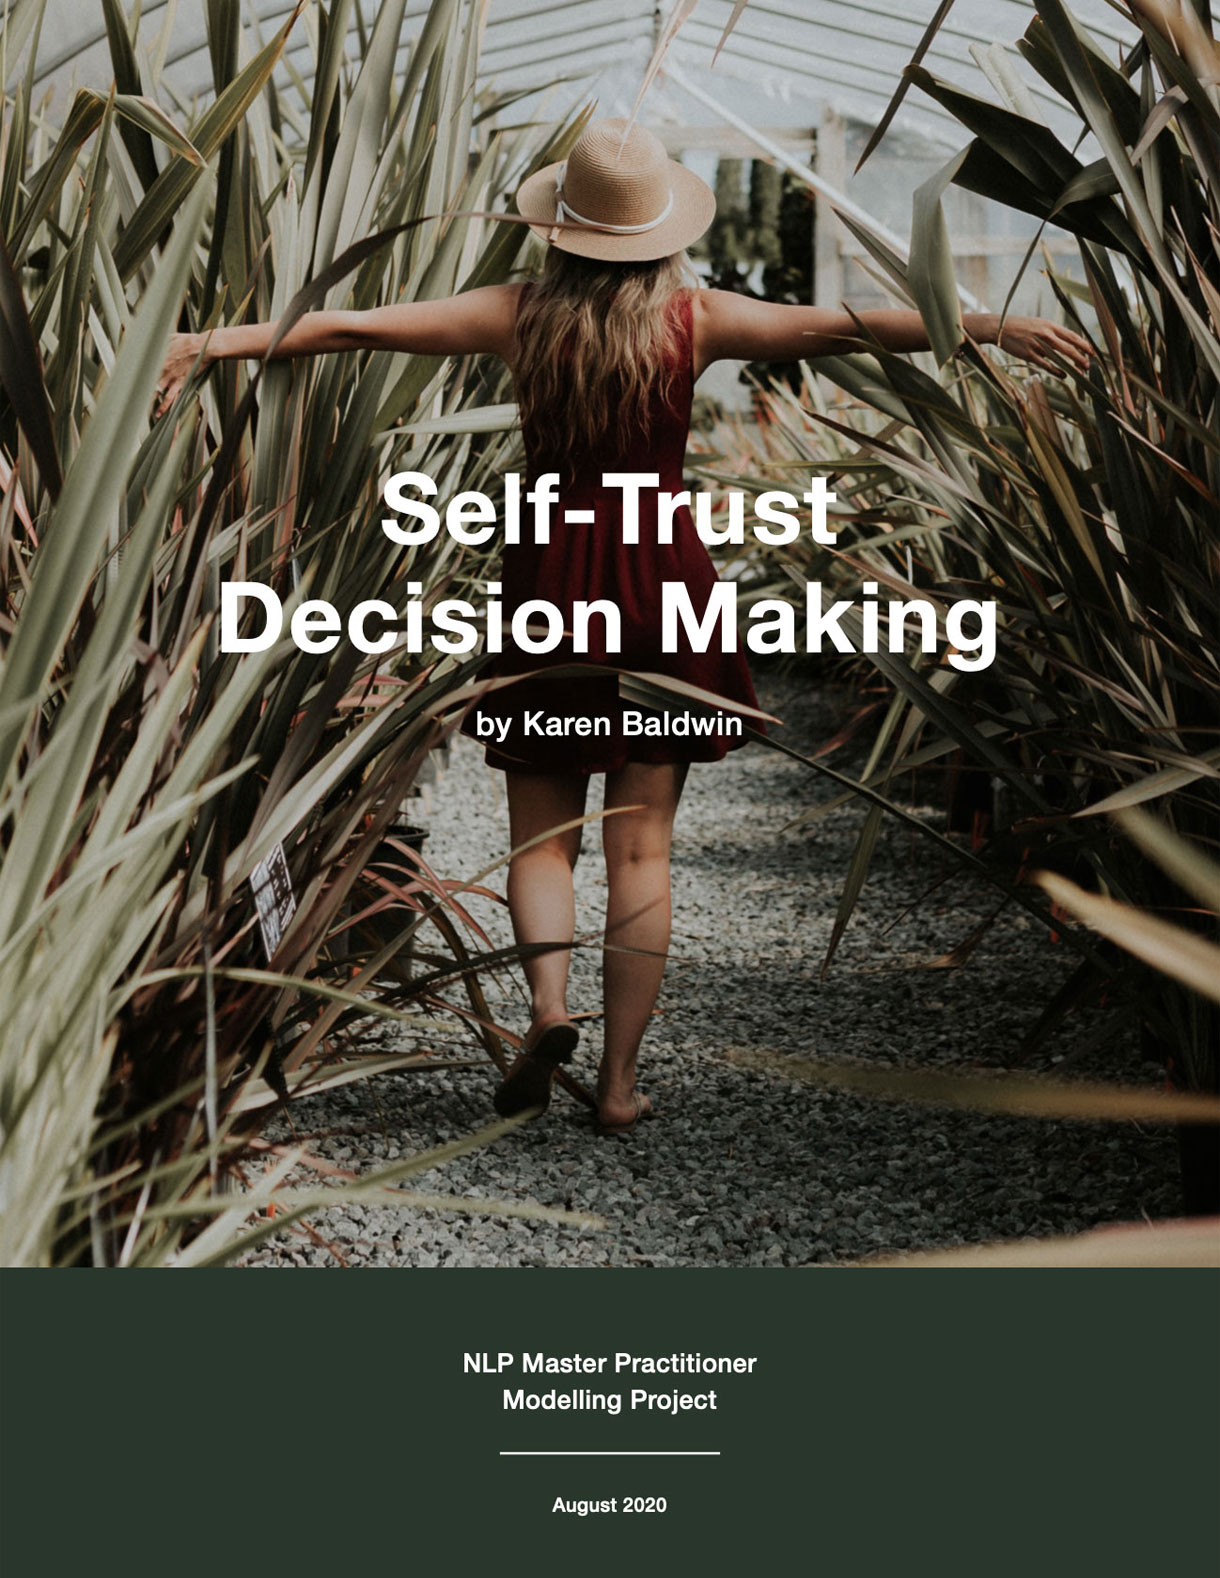 Self-Trust Decision Making